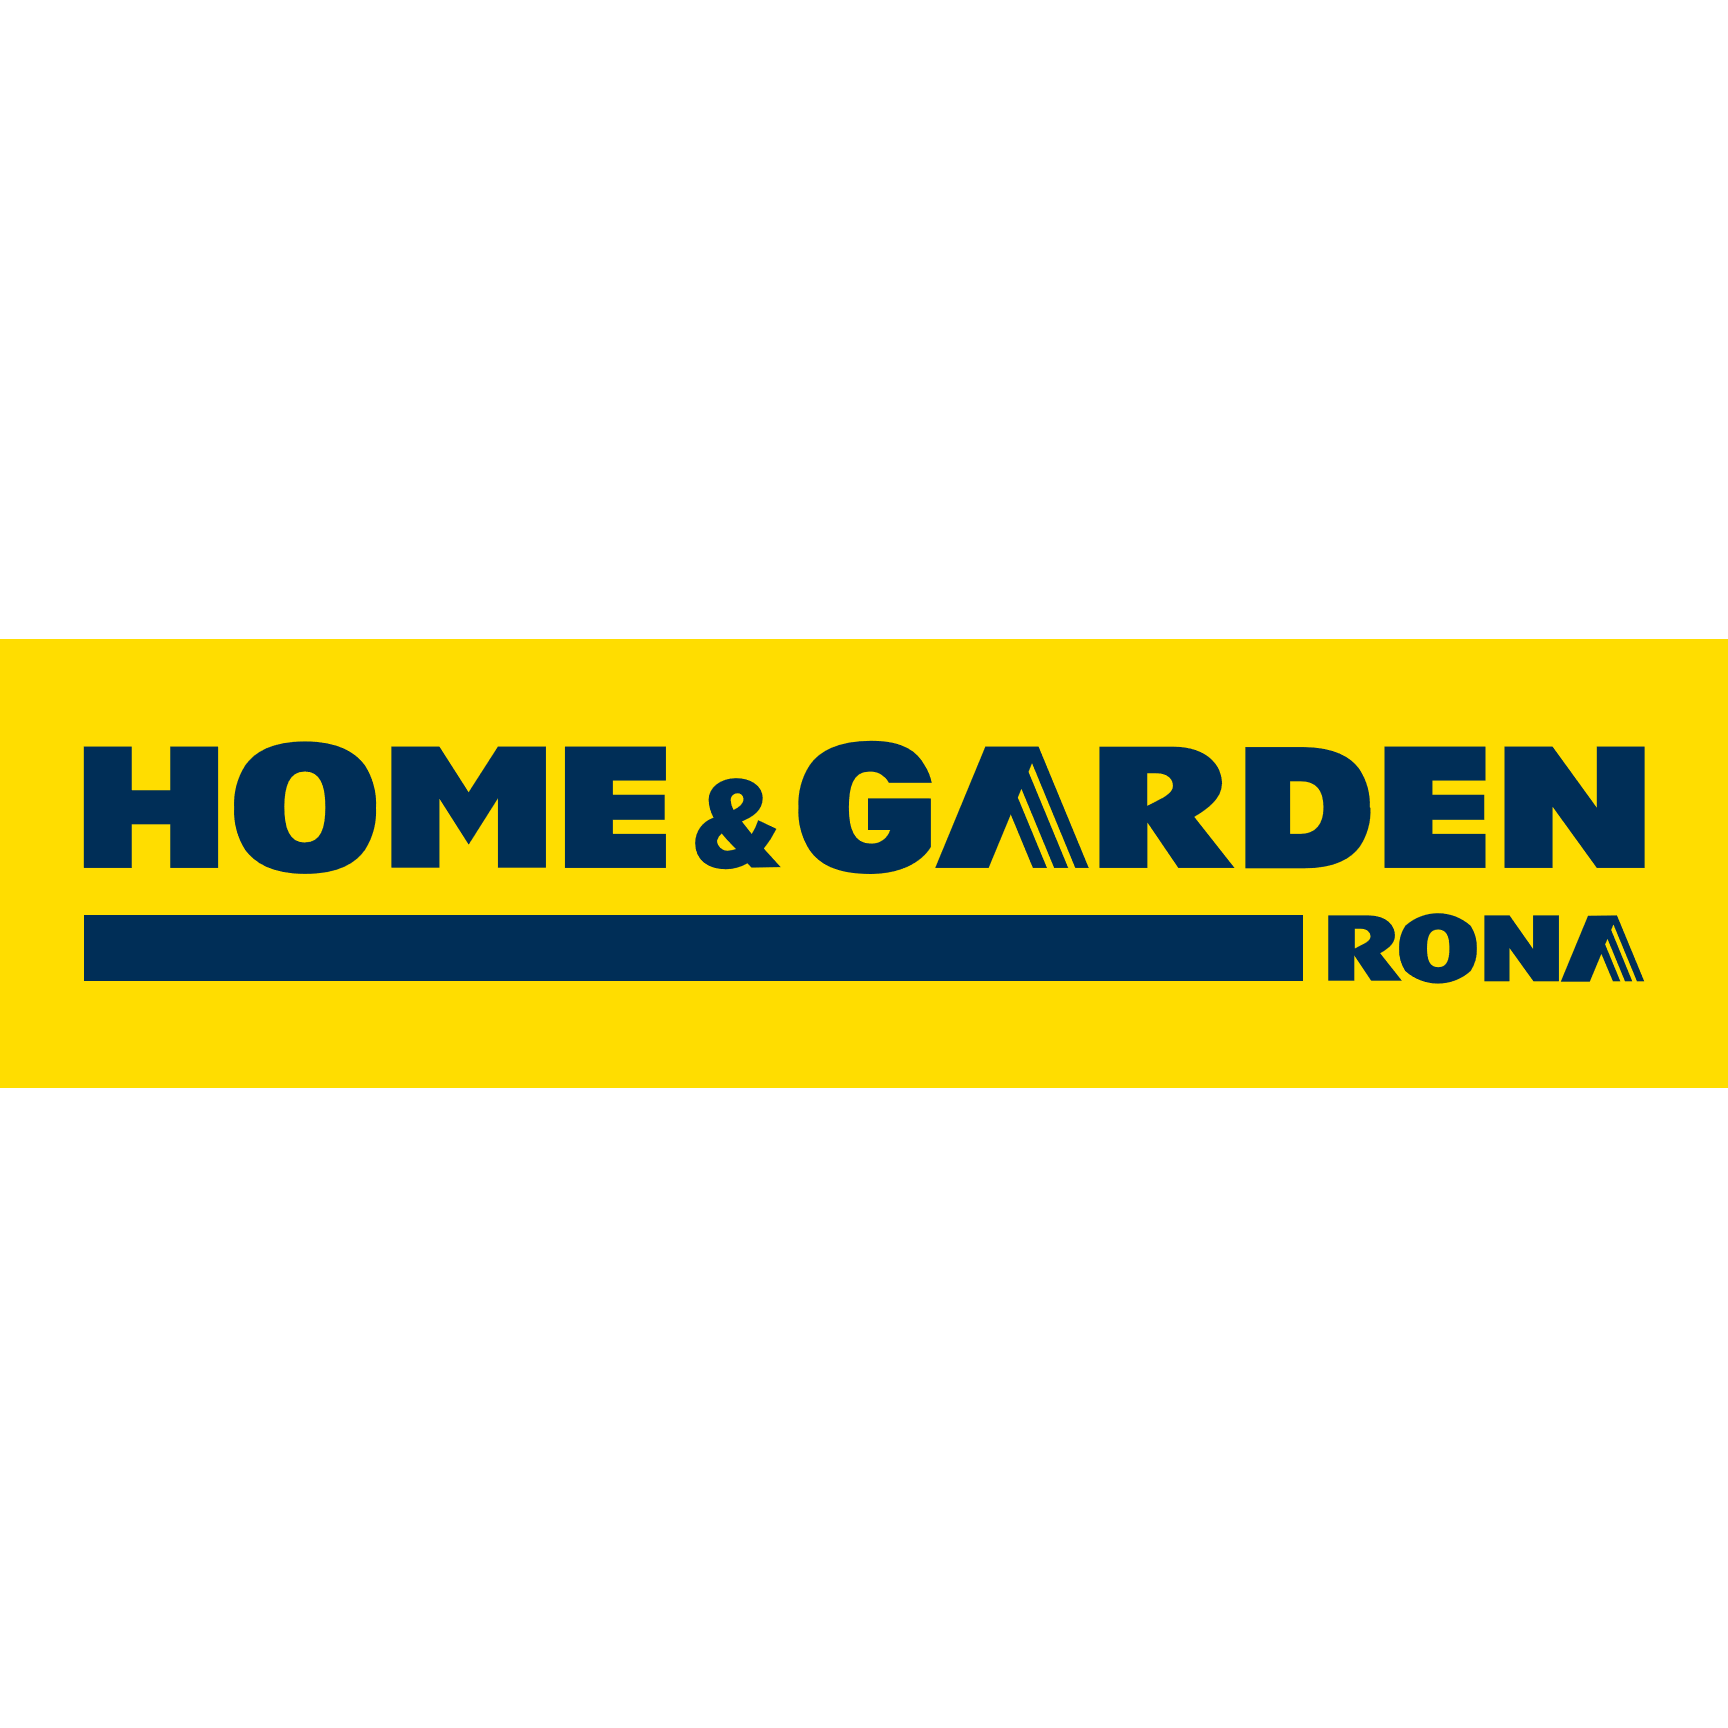 Home Improvement Store in ON Toronto M6N 5B7 Home & Garden RONA 110 West Toronto Street  (416)766-4664